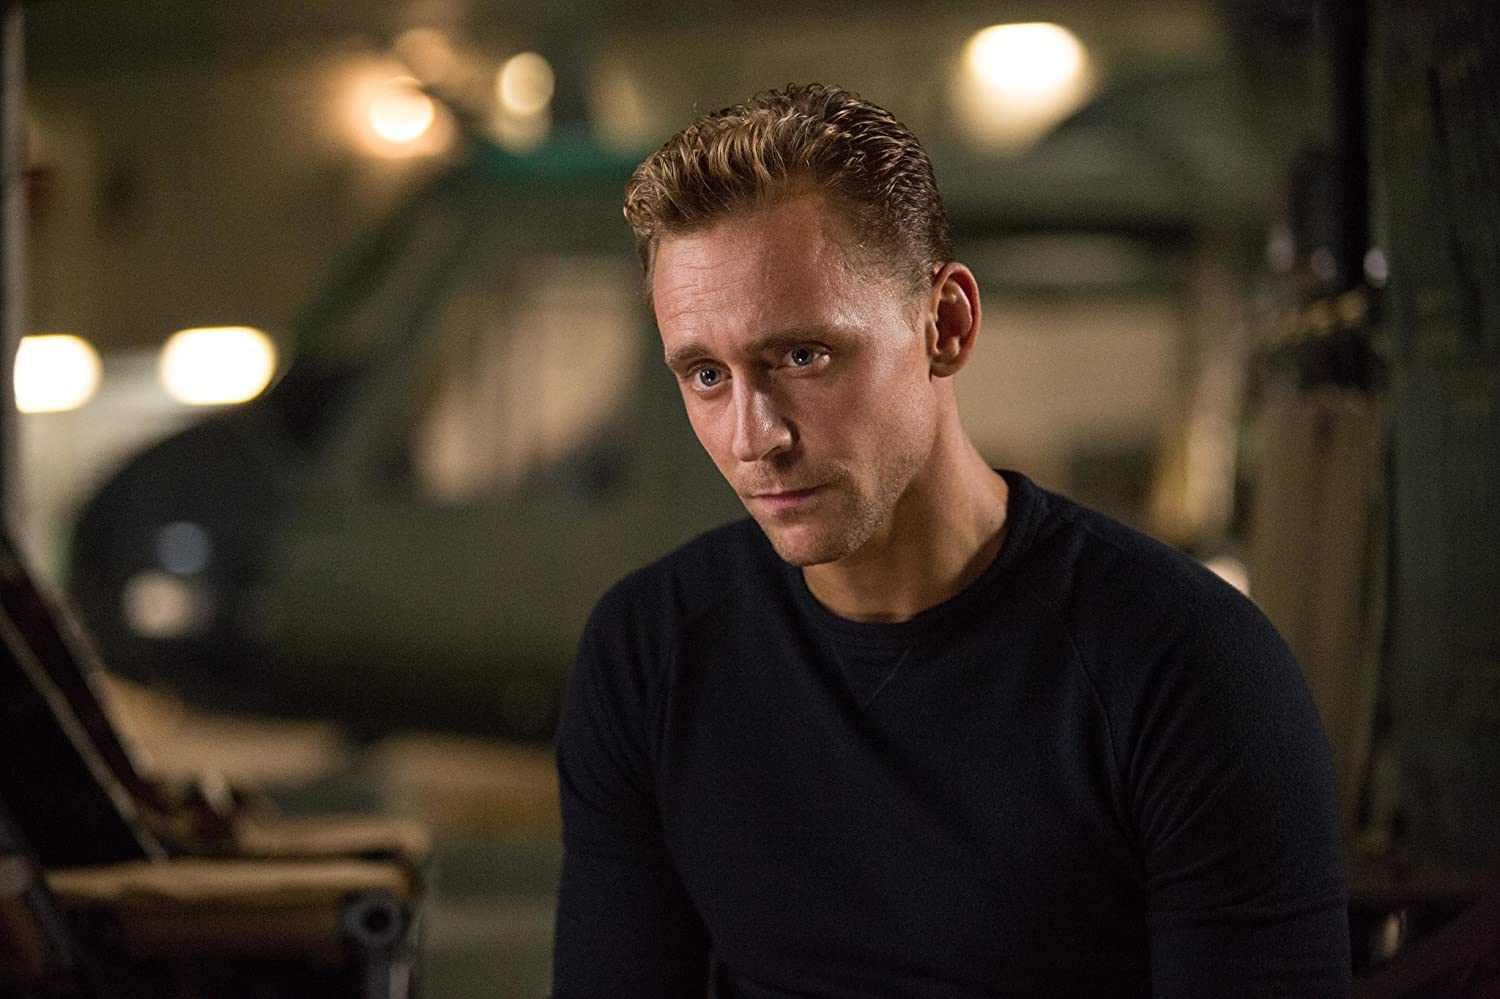 Tom Hiddleston in Kong: Skull Island (2017)